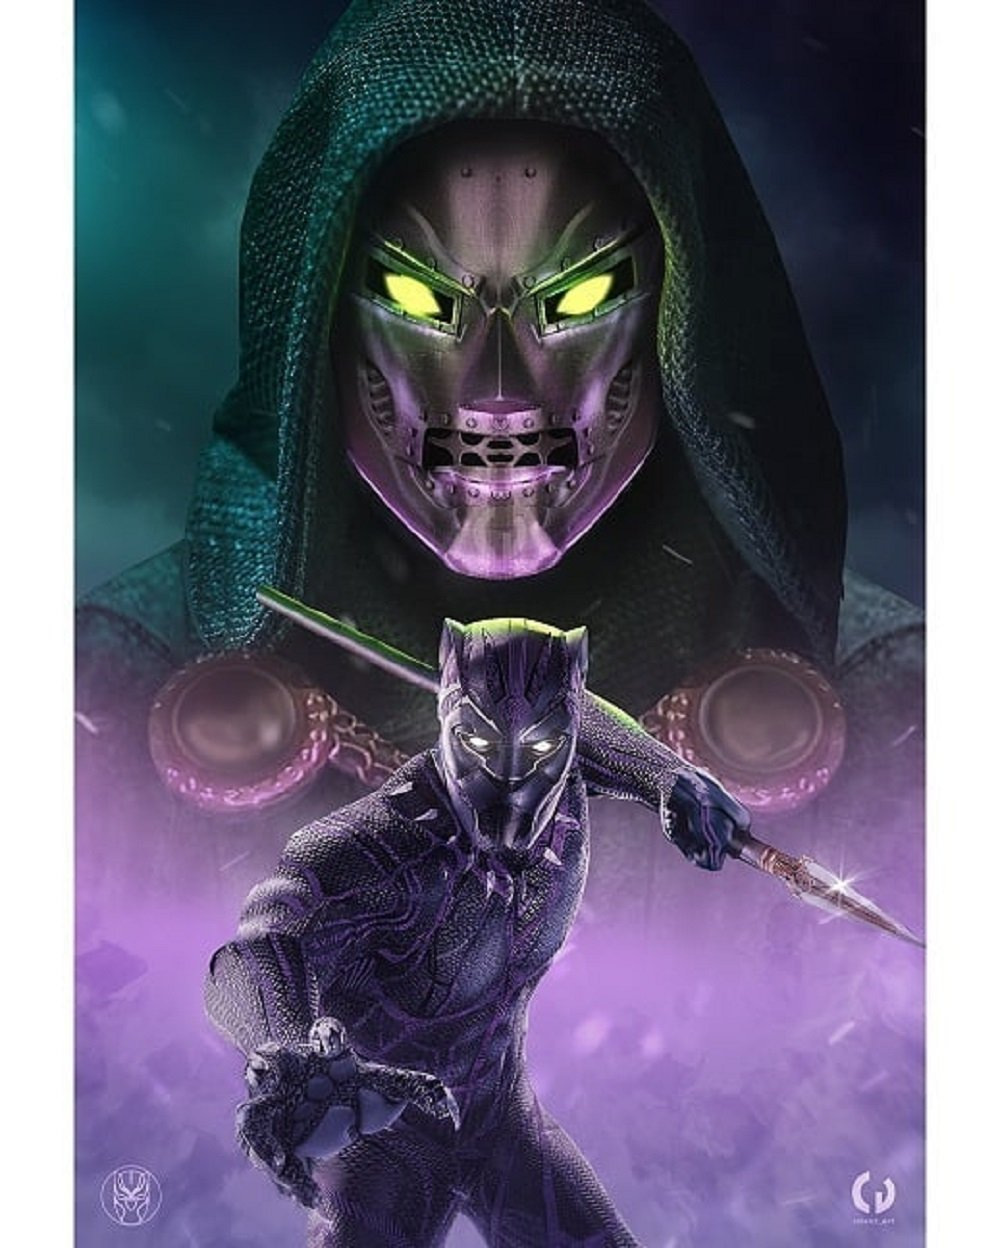 Doctor Doom Enters The Mcu On Gorgeous Black Panther 2 Fan Poster